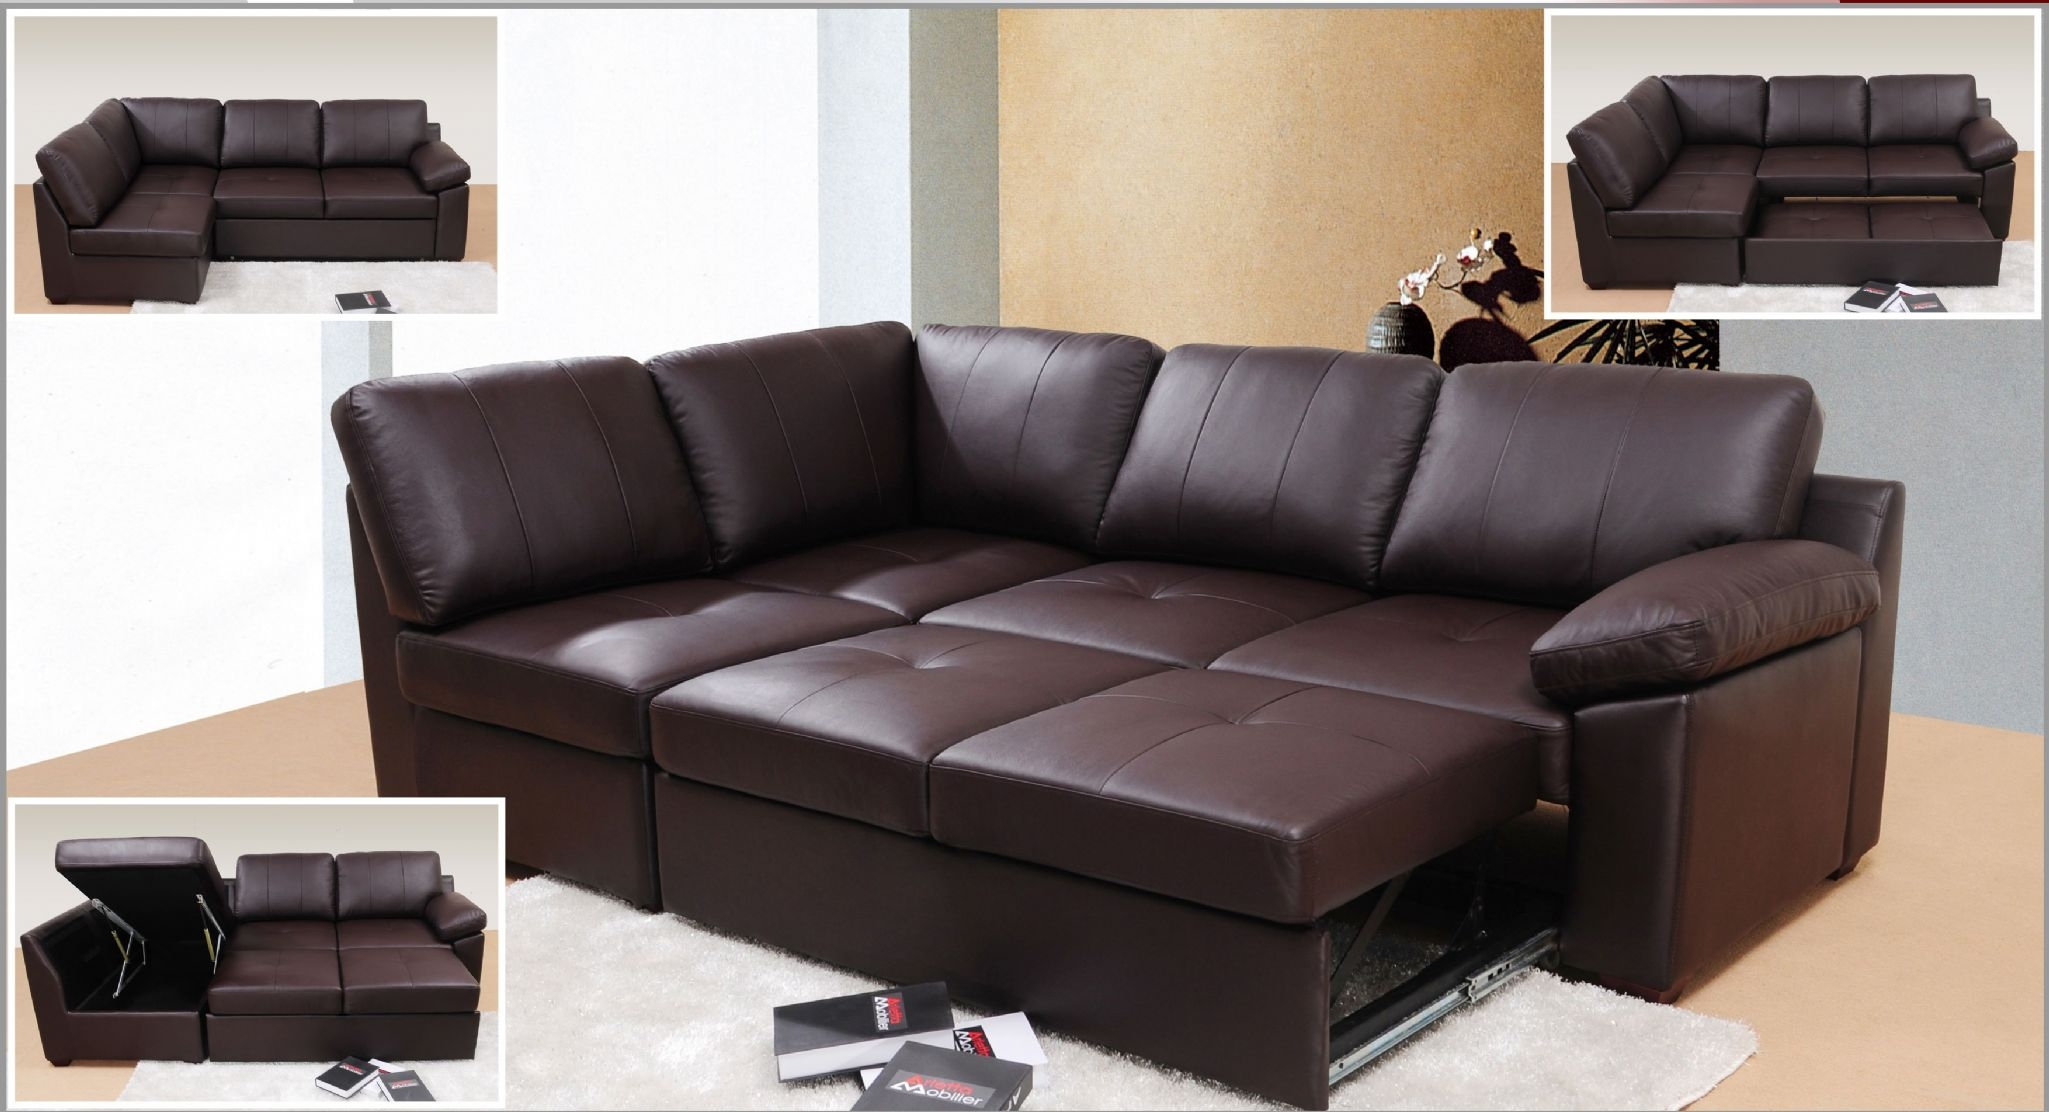 Sofa Bed Leather Corner Tehranmix Decoration Within Cheap Corner Sofa Beds (Image 11 of 15)